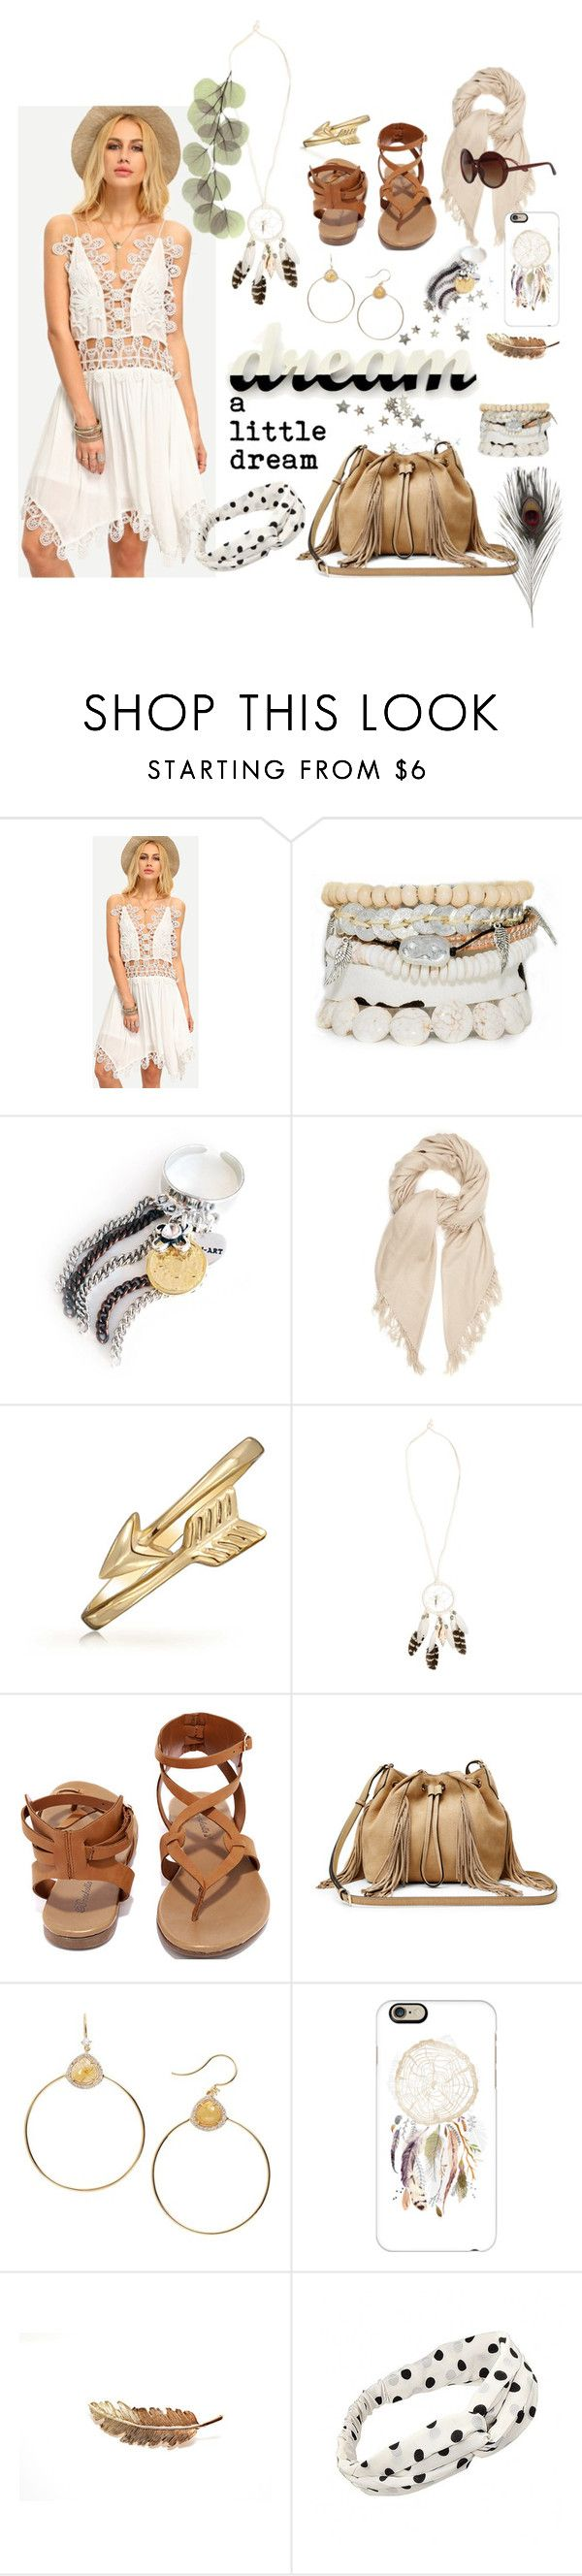 """Dream a little dream"" by iwona-estera on Polyvore featuring Isabel Marant, Bling Jewelry, WILD & FREE, Breckelle's, Diane Von Furstenberg, Nadri, Casetify and Trio Eyewear"